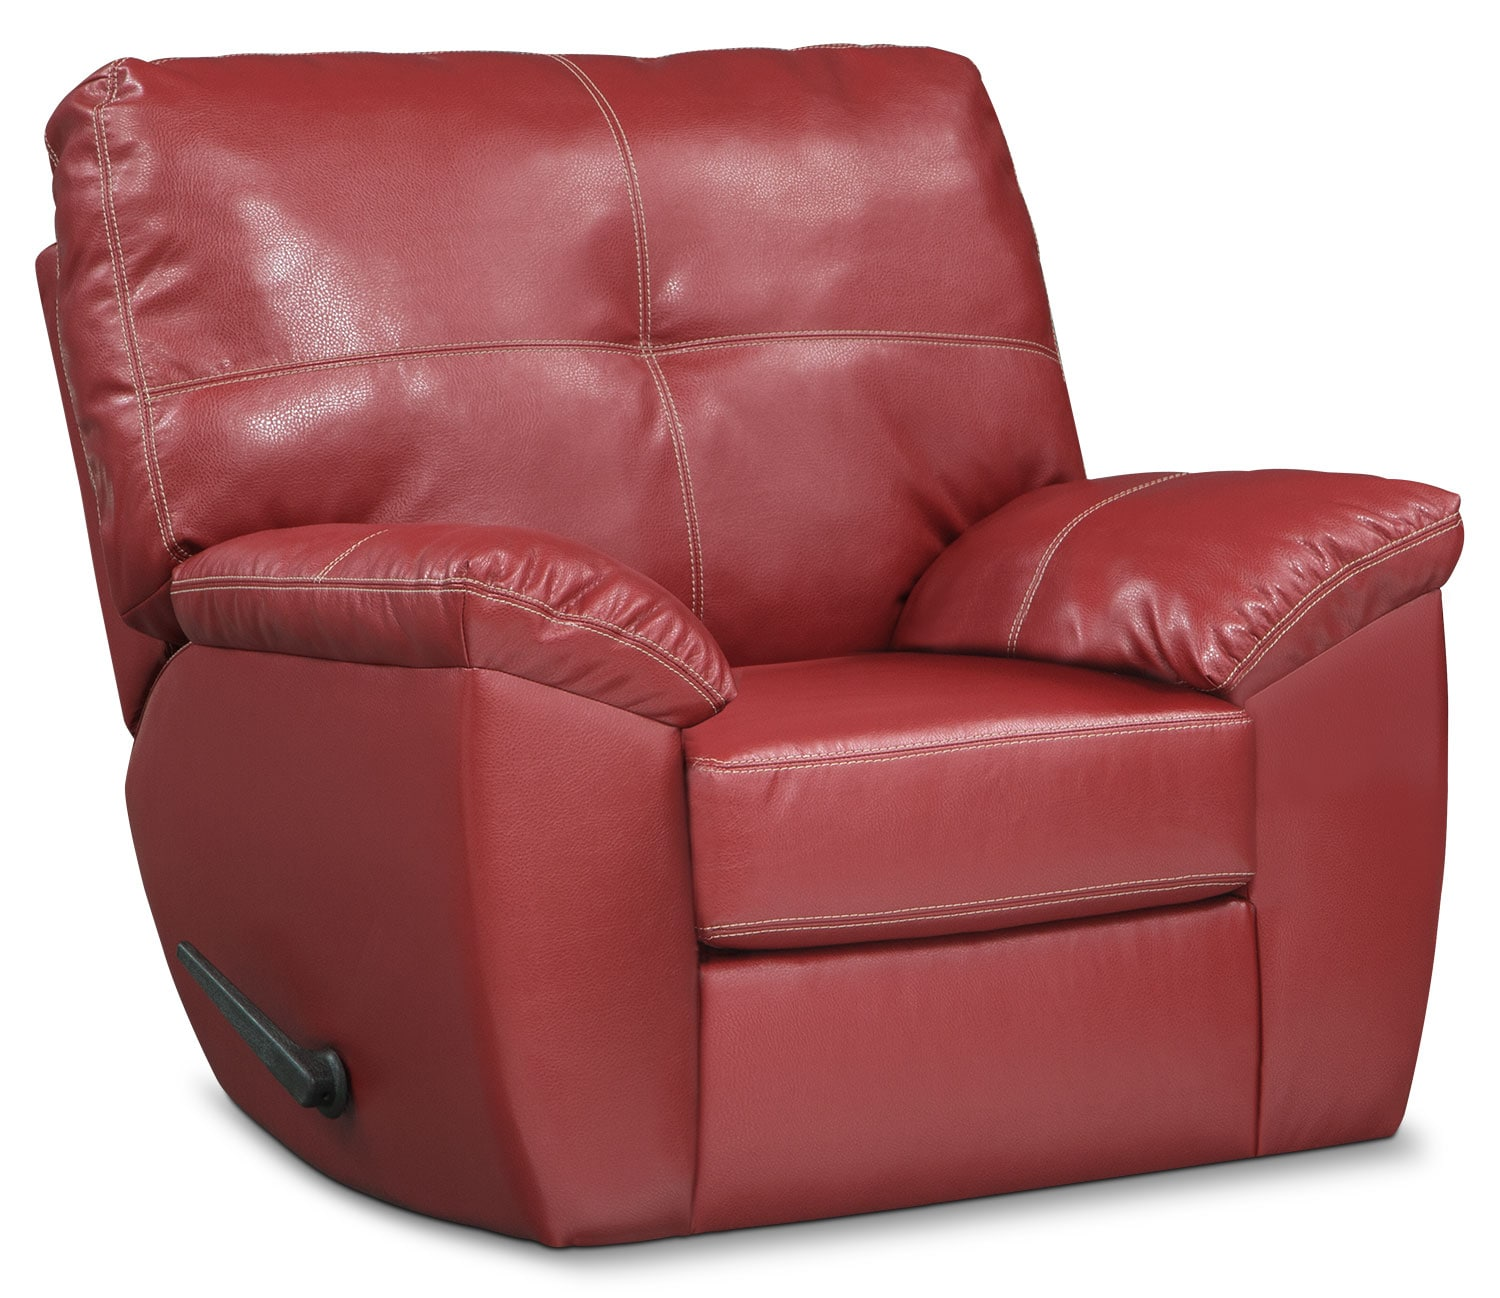 Living Room Furniture - Rialto Glider Recliner - Cardinal